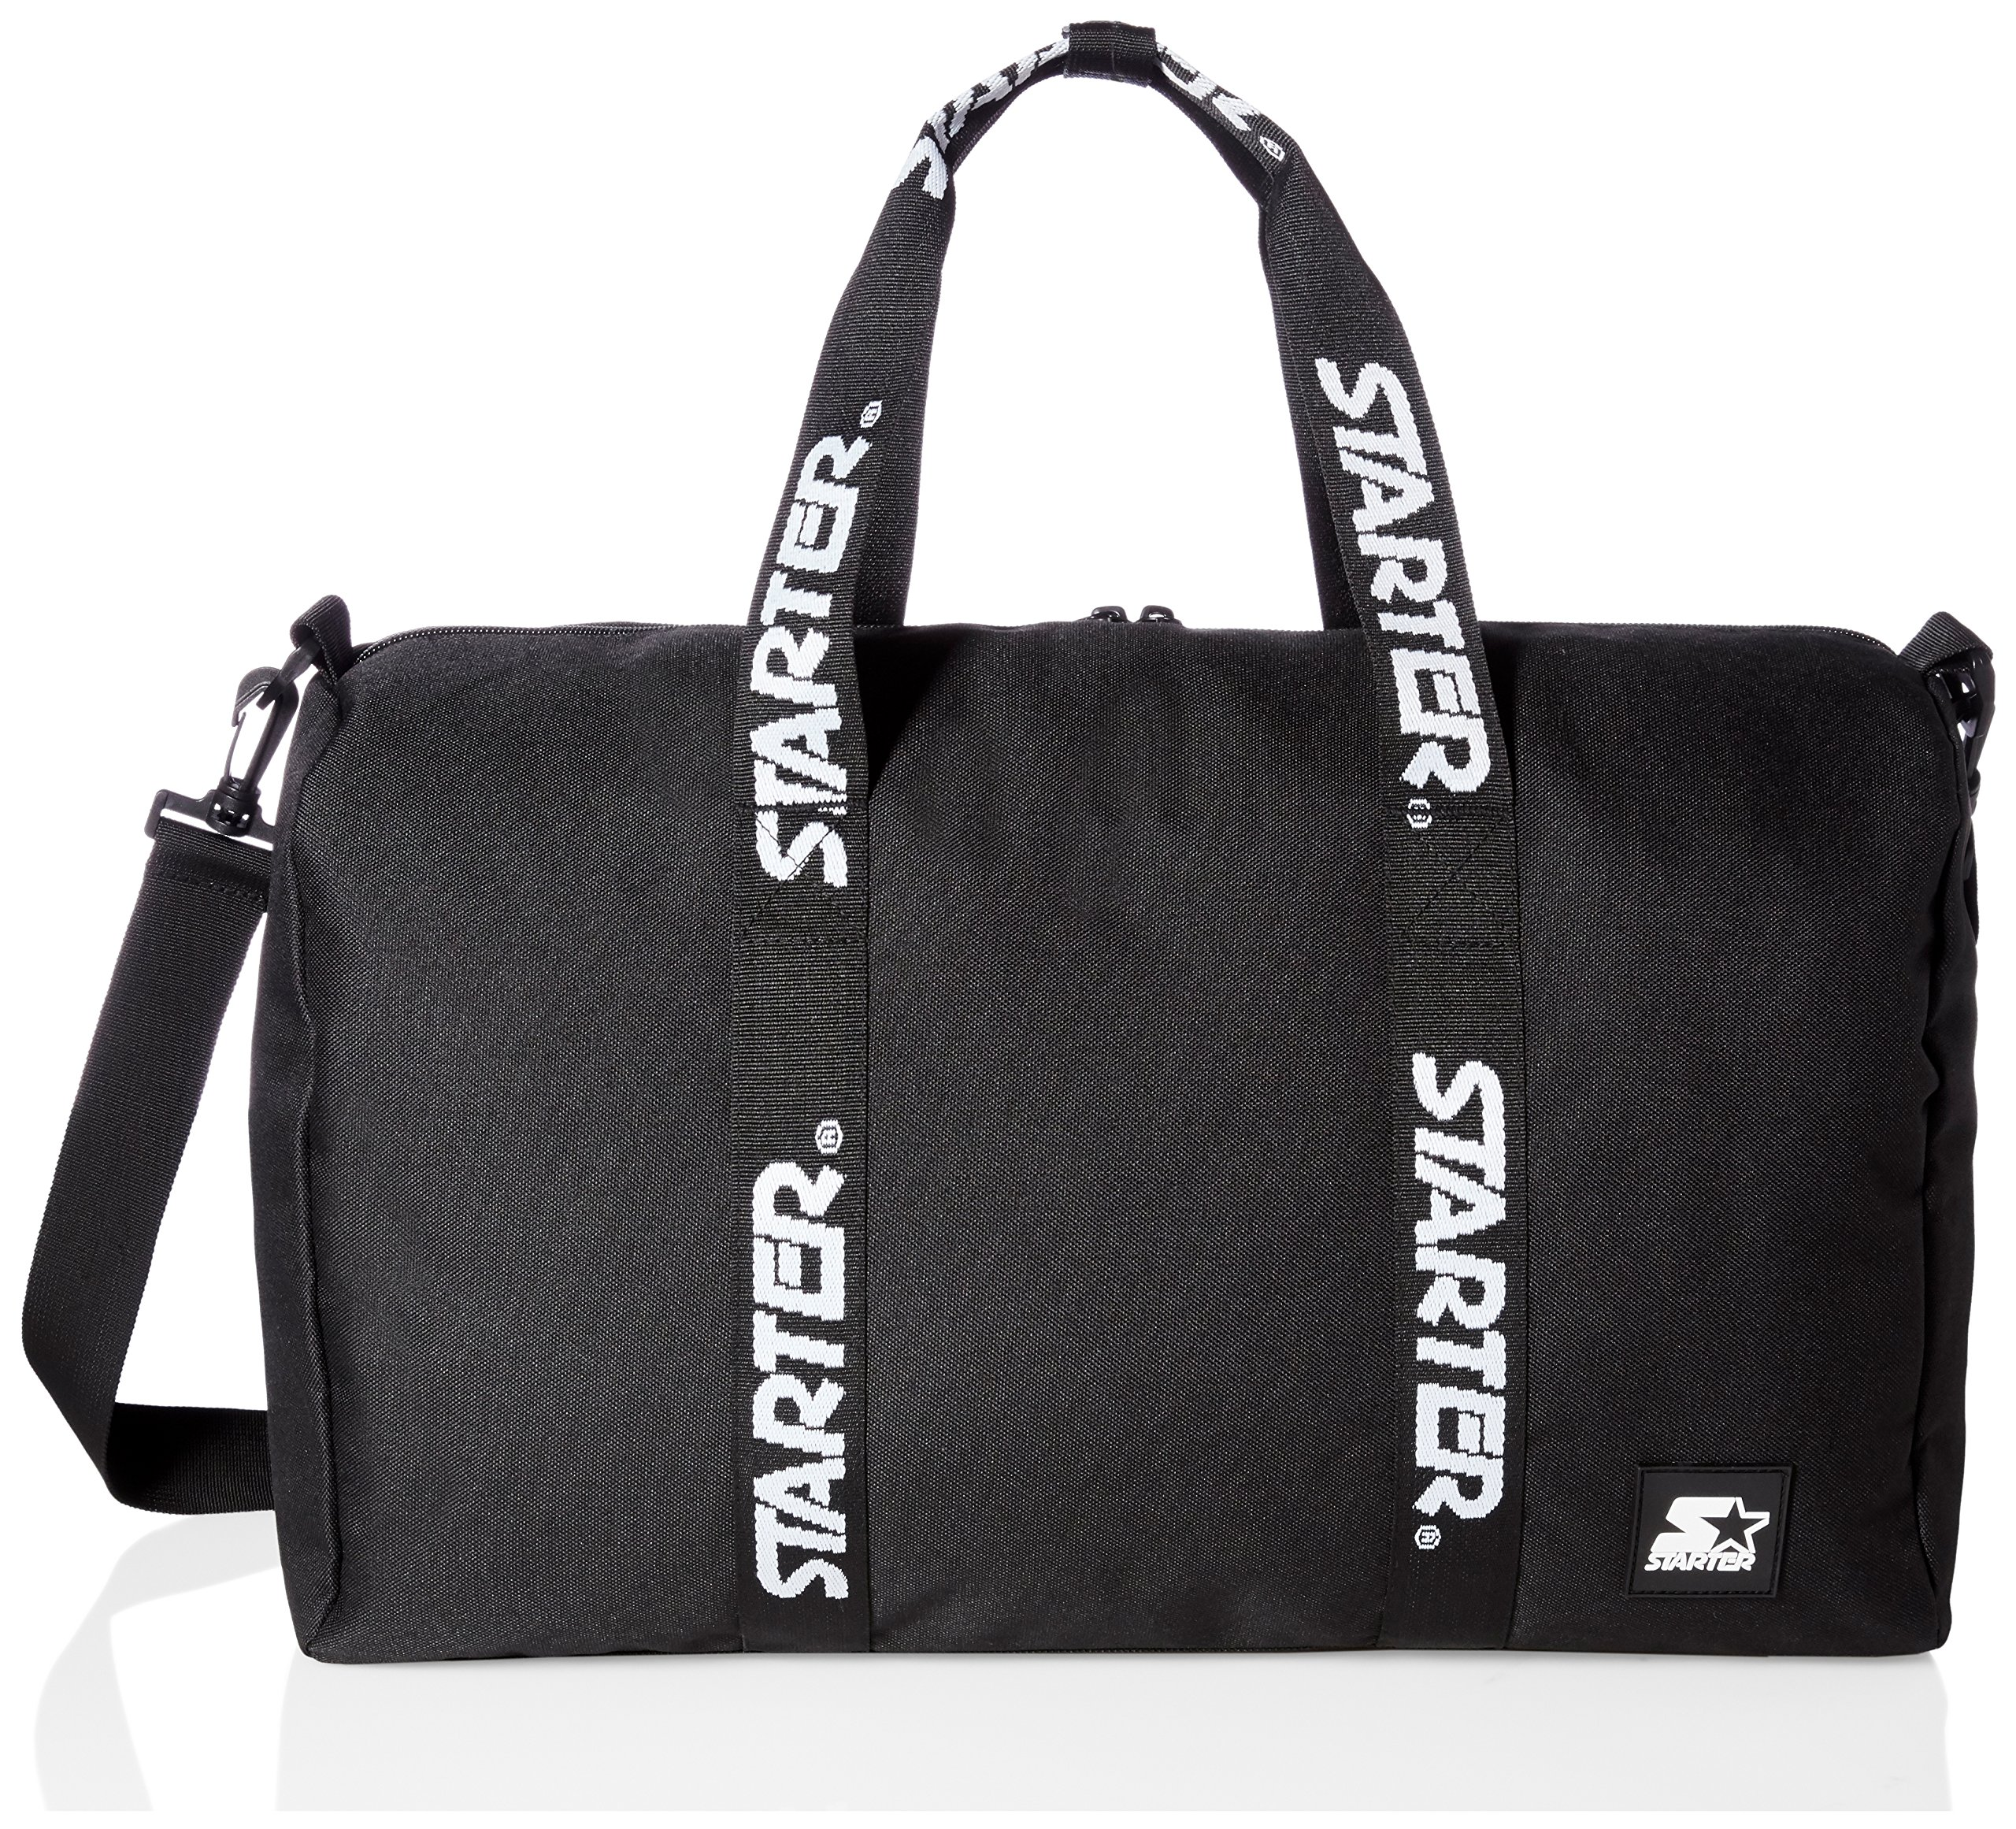 Starter Yoga Duffle Bag, Amazon Exclusive, Black, One Size